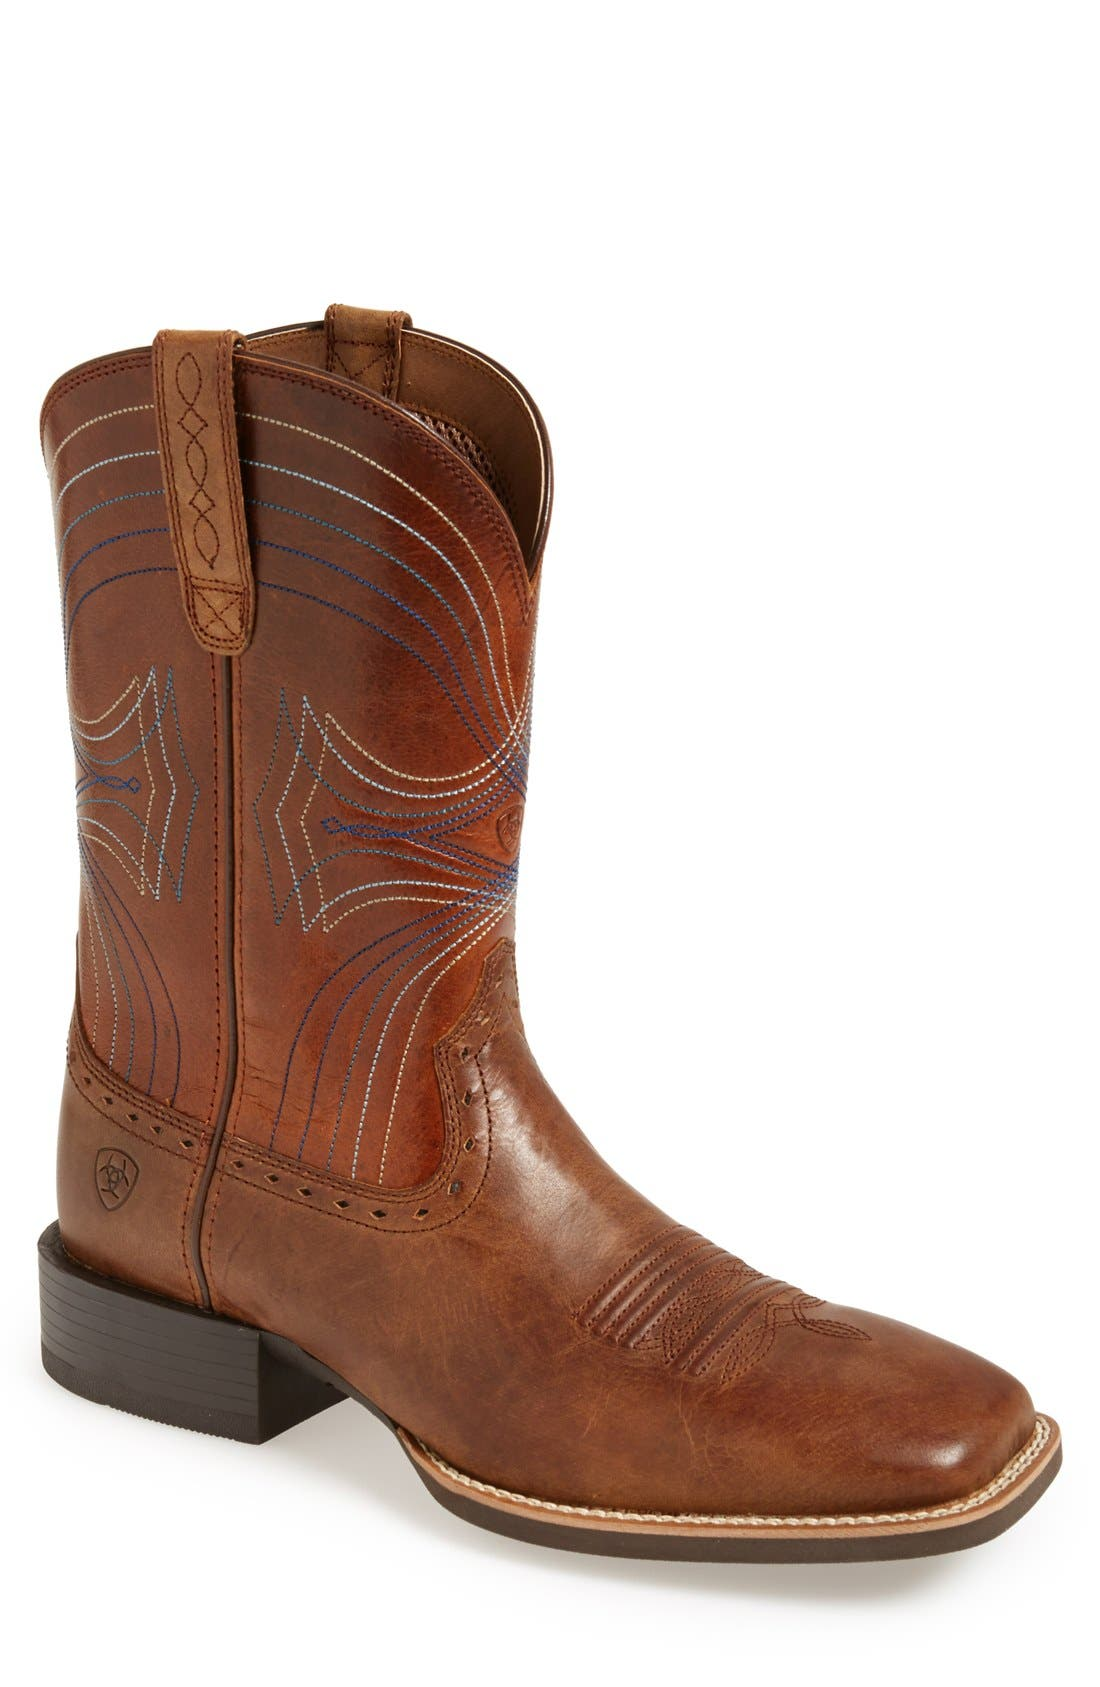 ARIAT, 'Sport' Leather Cowboy Boot, Main thumbnail 1, color, BROWN